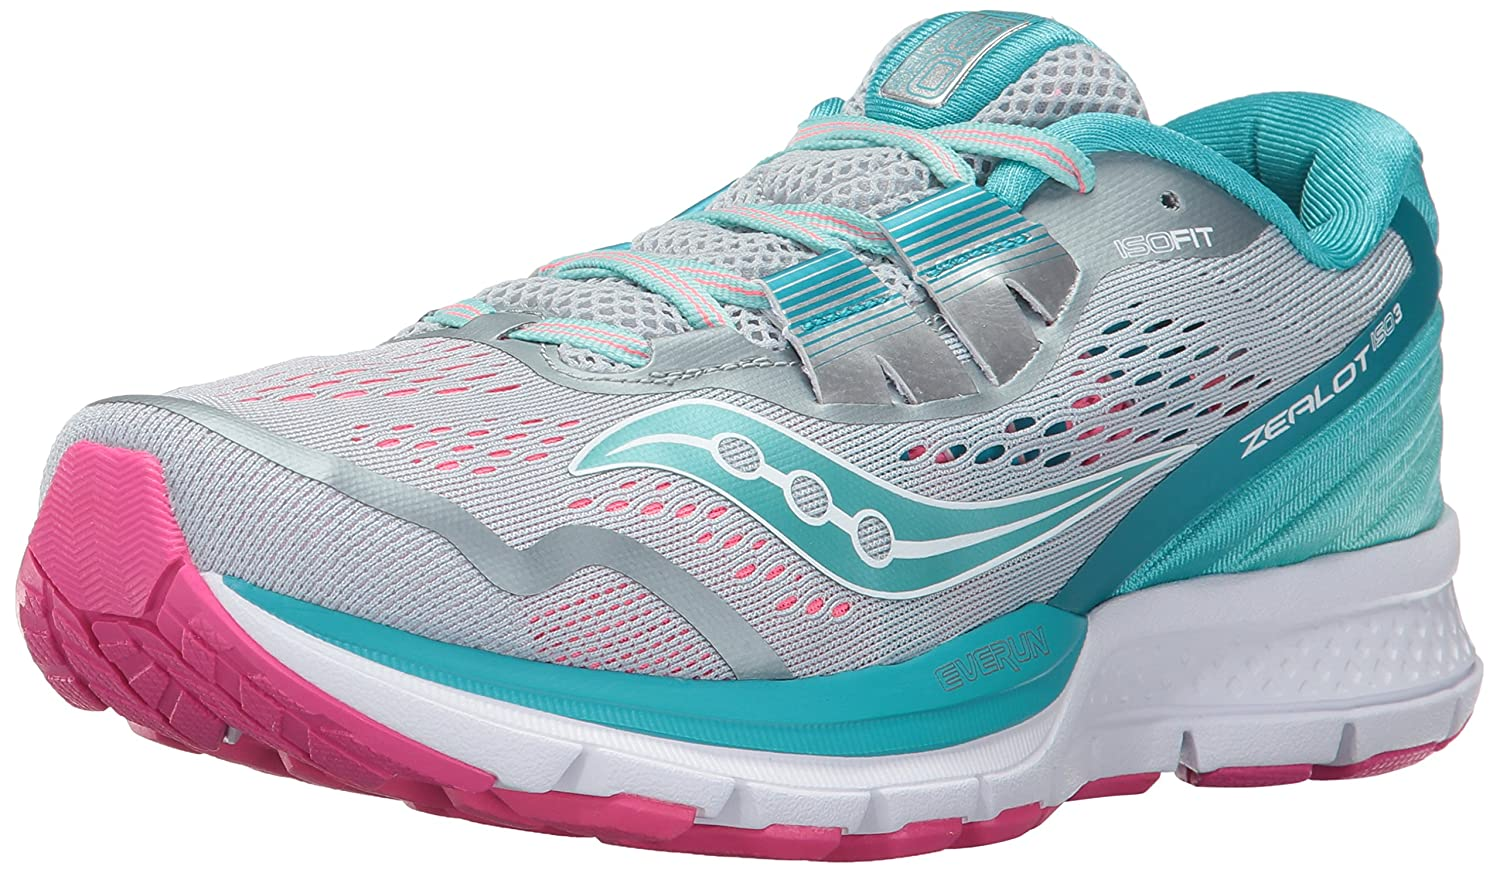 Saucony Women's Zealot Iso 3 Running Shoe B01N6JK2H5 9.5 B(M) US|Grey Blue